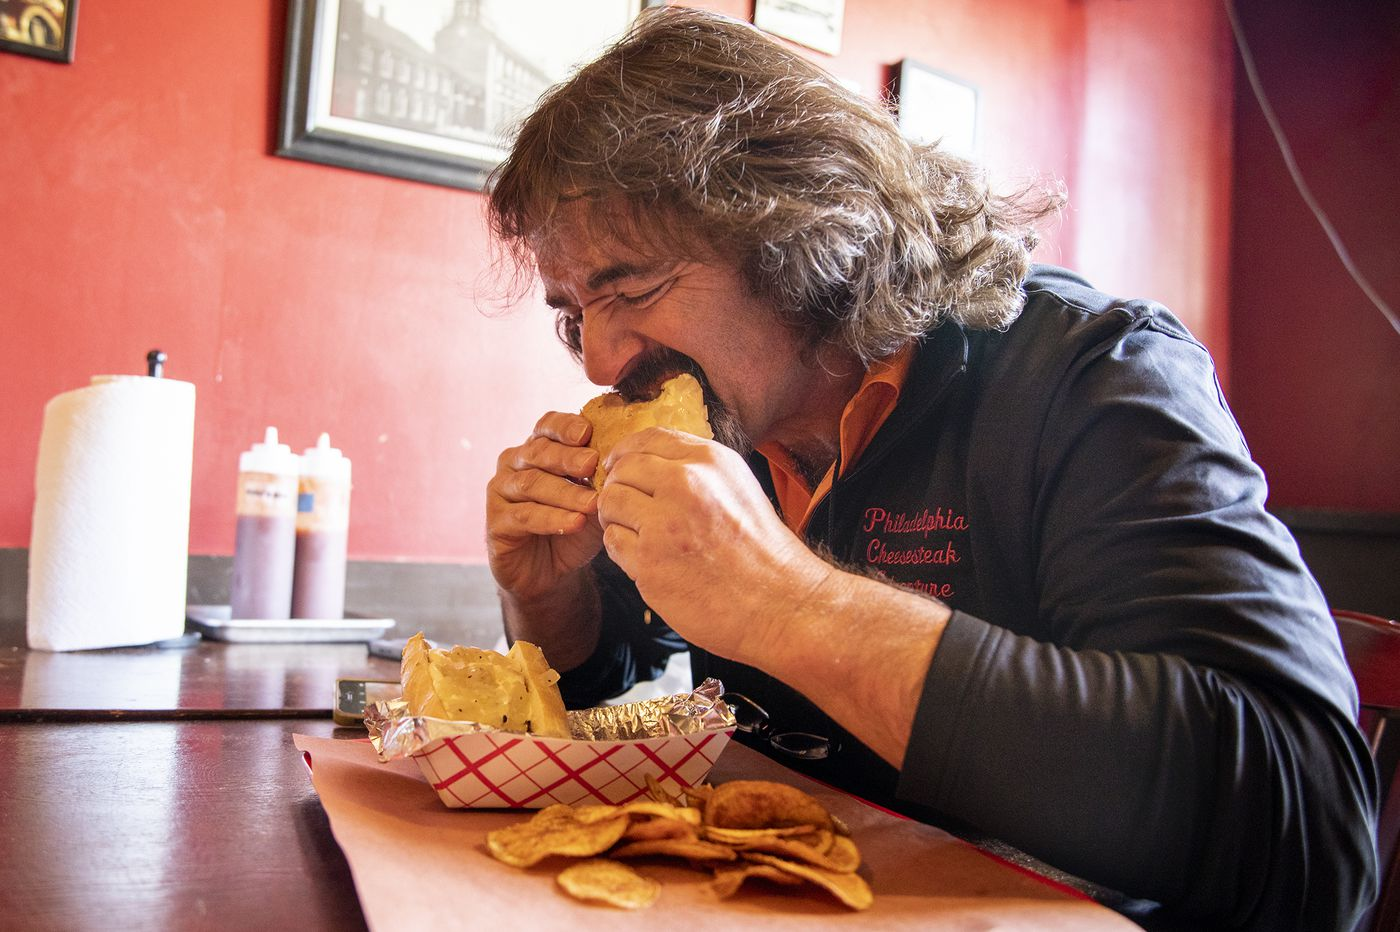 This Cheesesteak Critic Has 500 Cheesesteaks Under His Belt